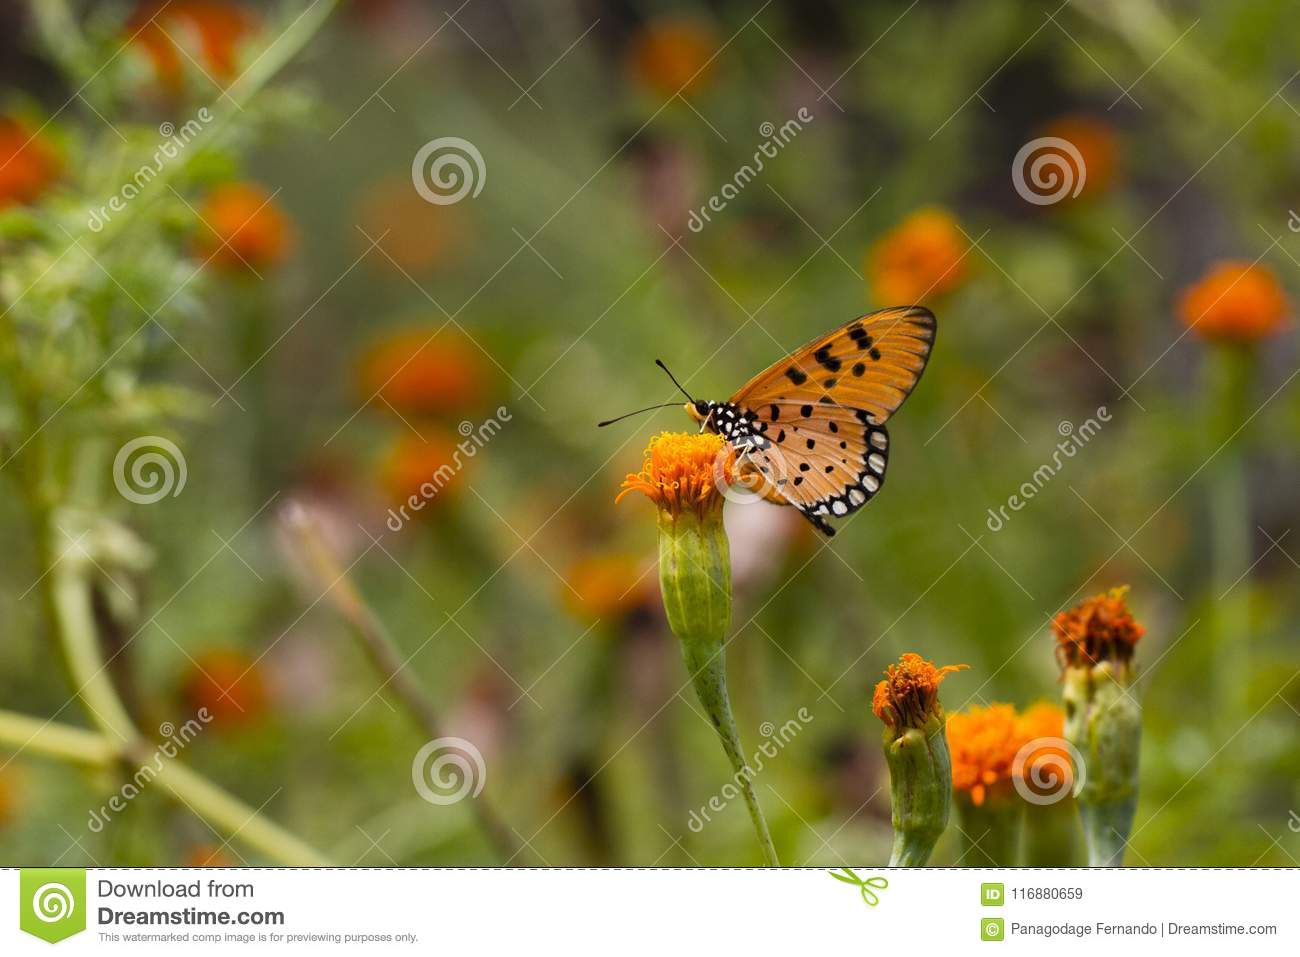 Tawny Coster butterfly - Acraea terpsicore